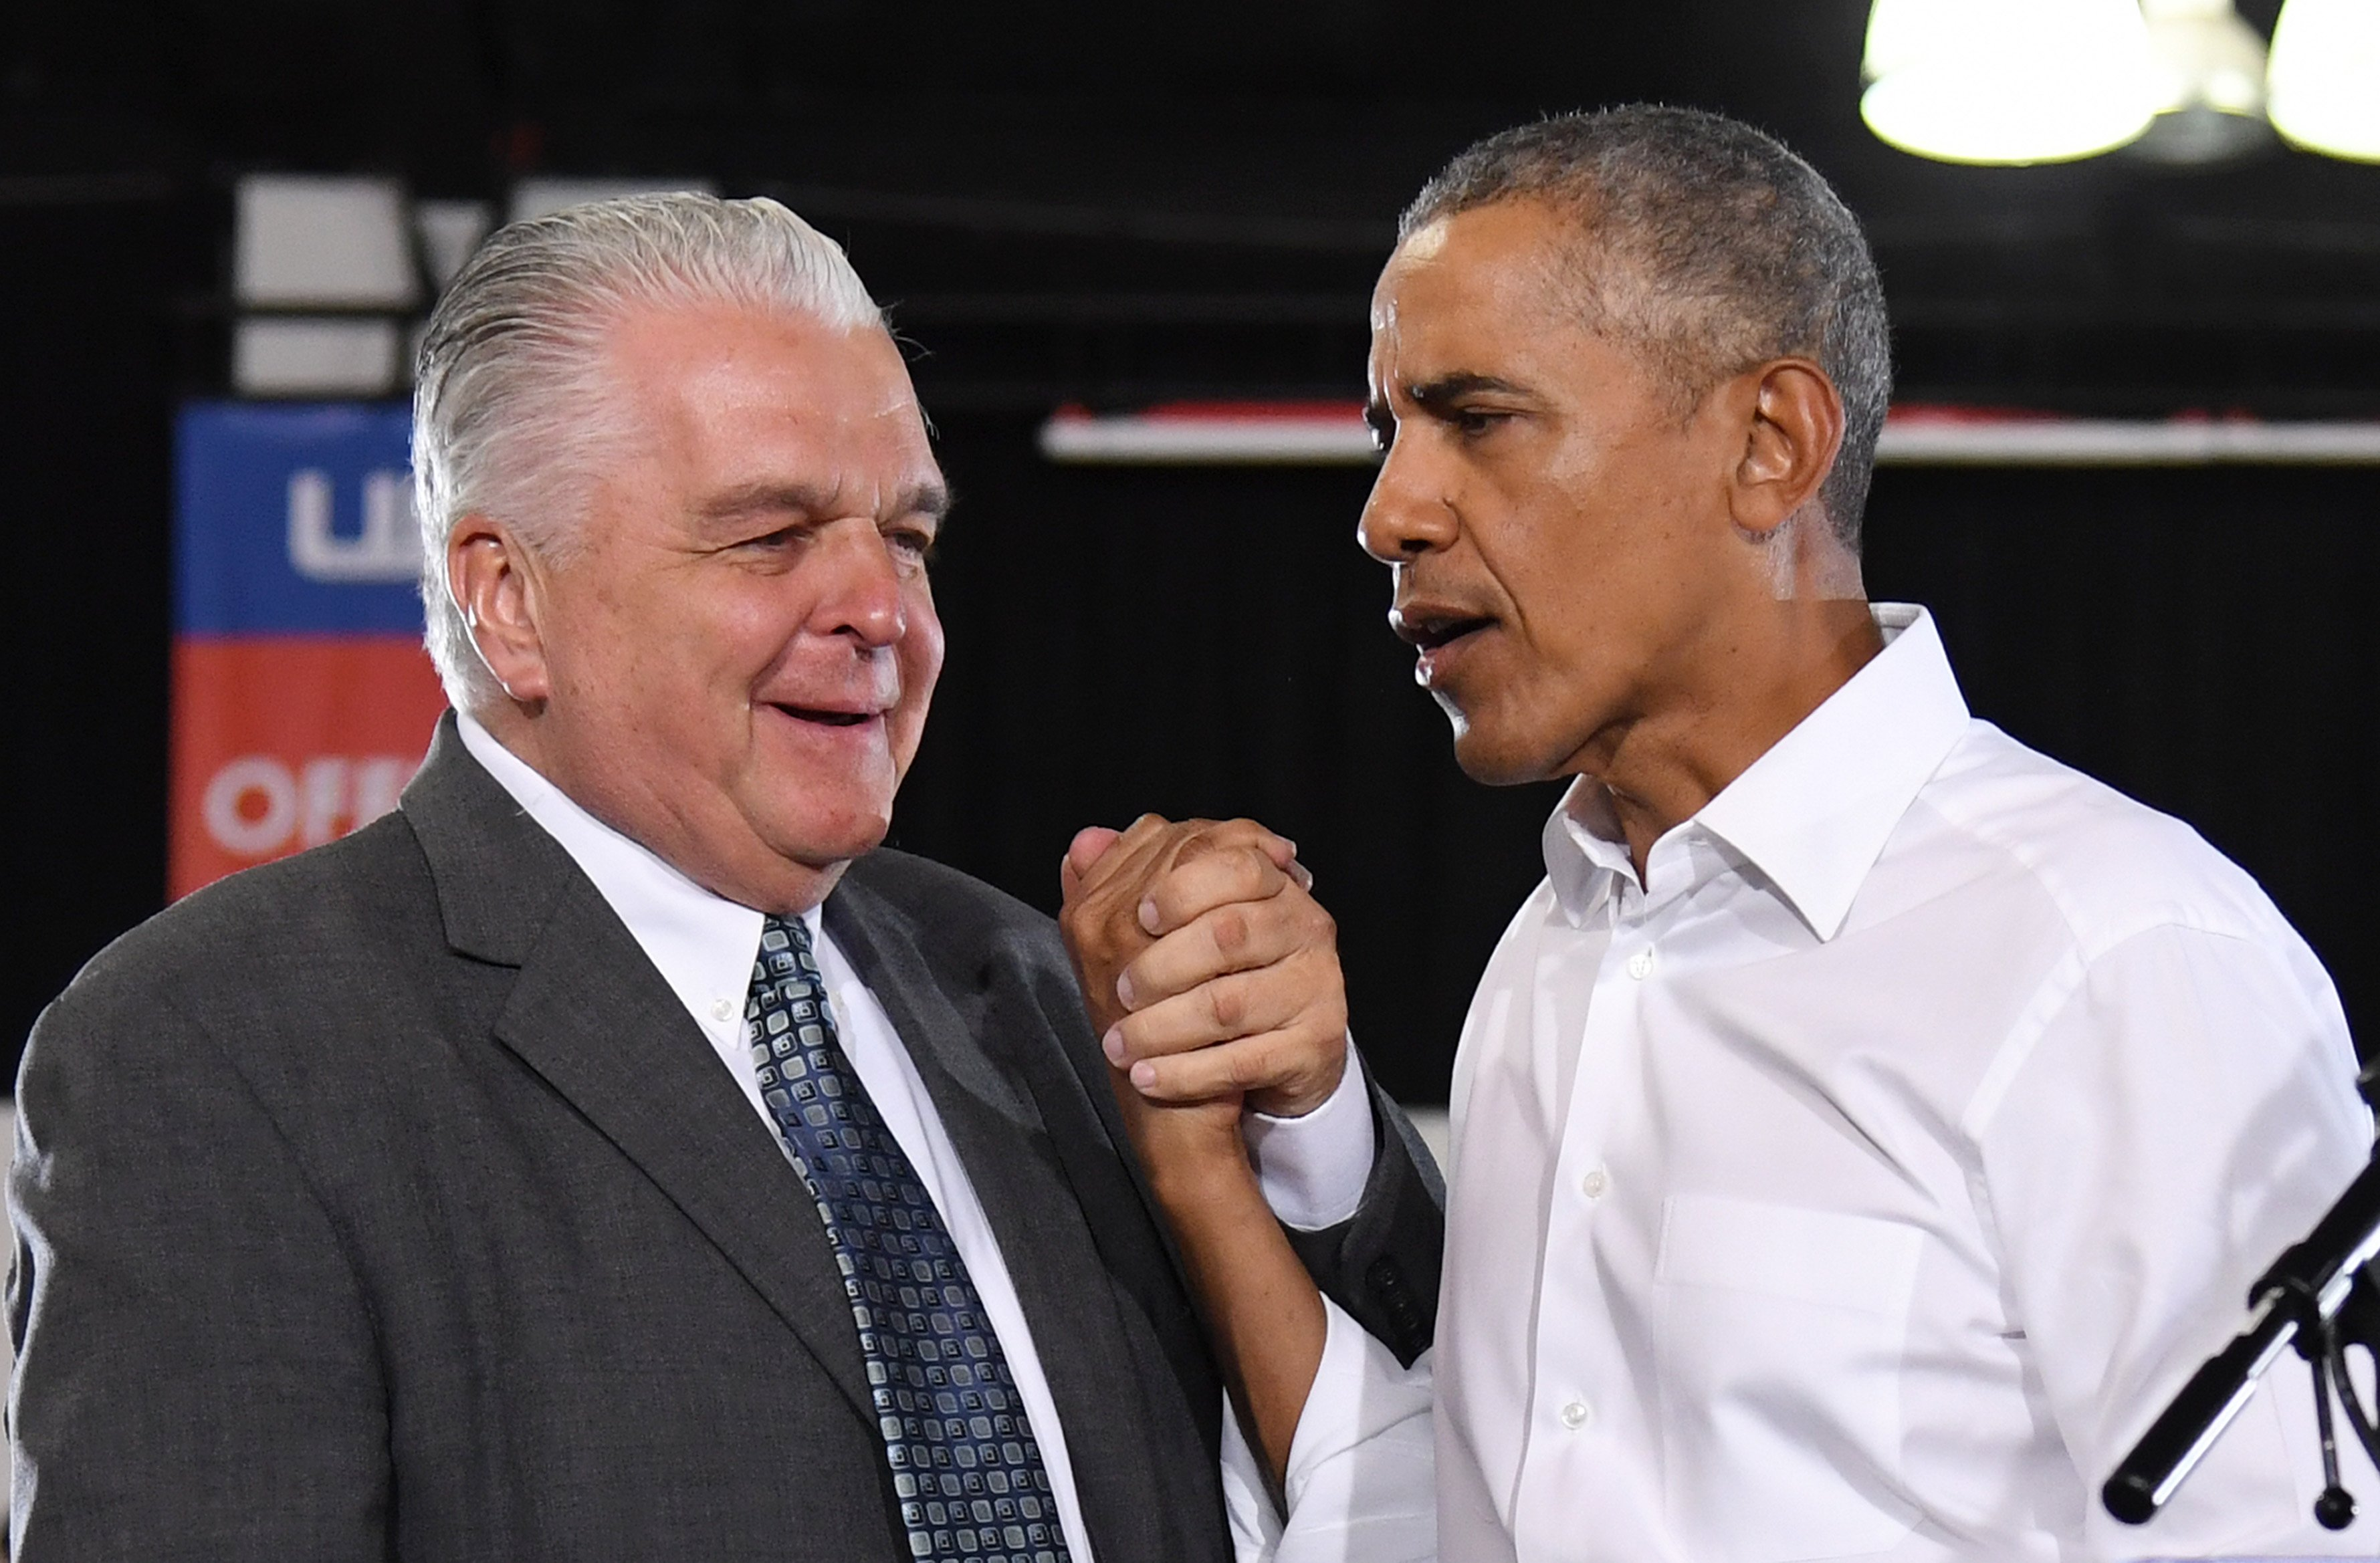 LAS VEGAS, NEVADA - OCTOBER 22: Clark County Commission Chairman and Democratic gubernatorial candidate Steve Sisolak (L) shakes hands with former U.S. President Barack Obama after they spoke at a get-out-the-vote rally at the Cox Pavilion as Obama campaigns for Nevada Democratic candidates on October 22, 2018 in Las Vegas, Nevada. (Photo by Ethan Miller/Getty Images)